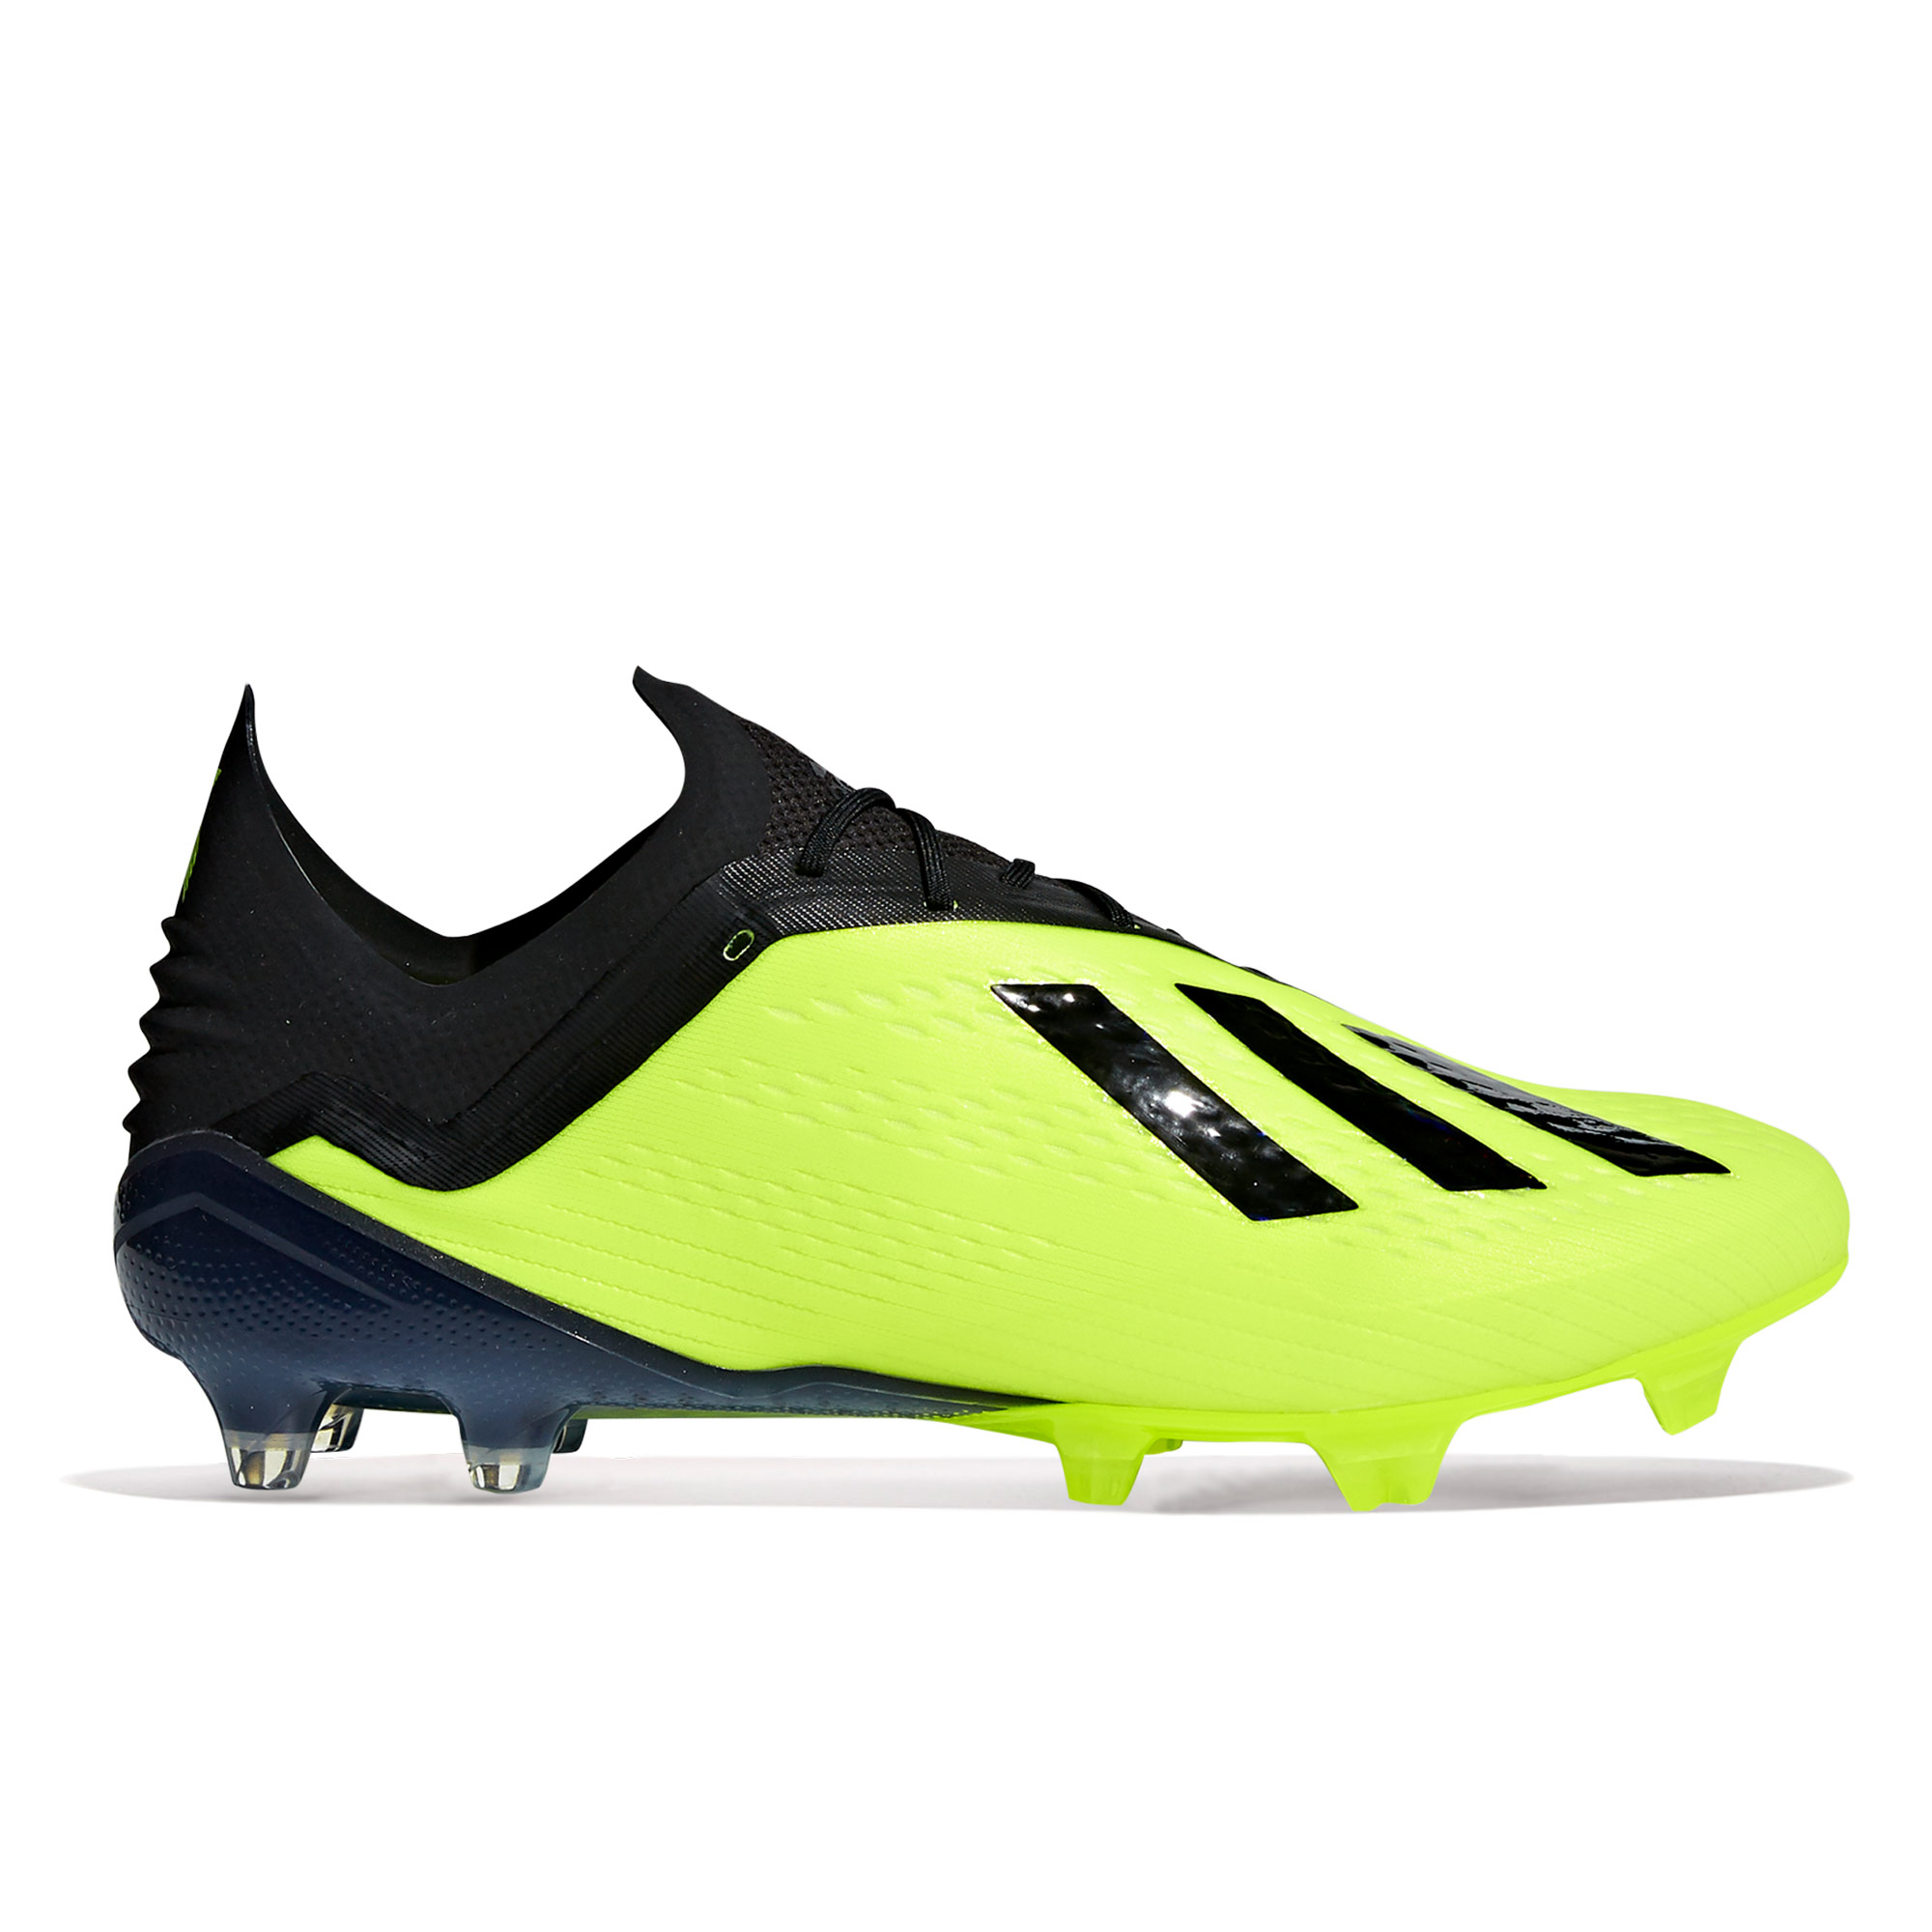 adidas X 18.1 Firm Ground Football Boots - Yellow